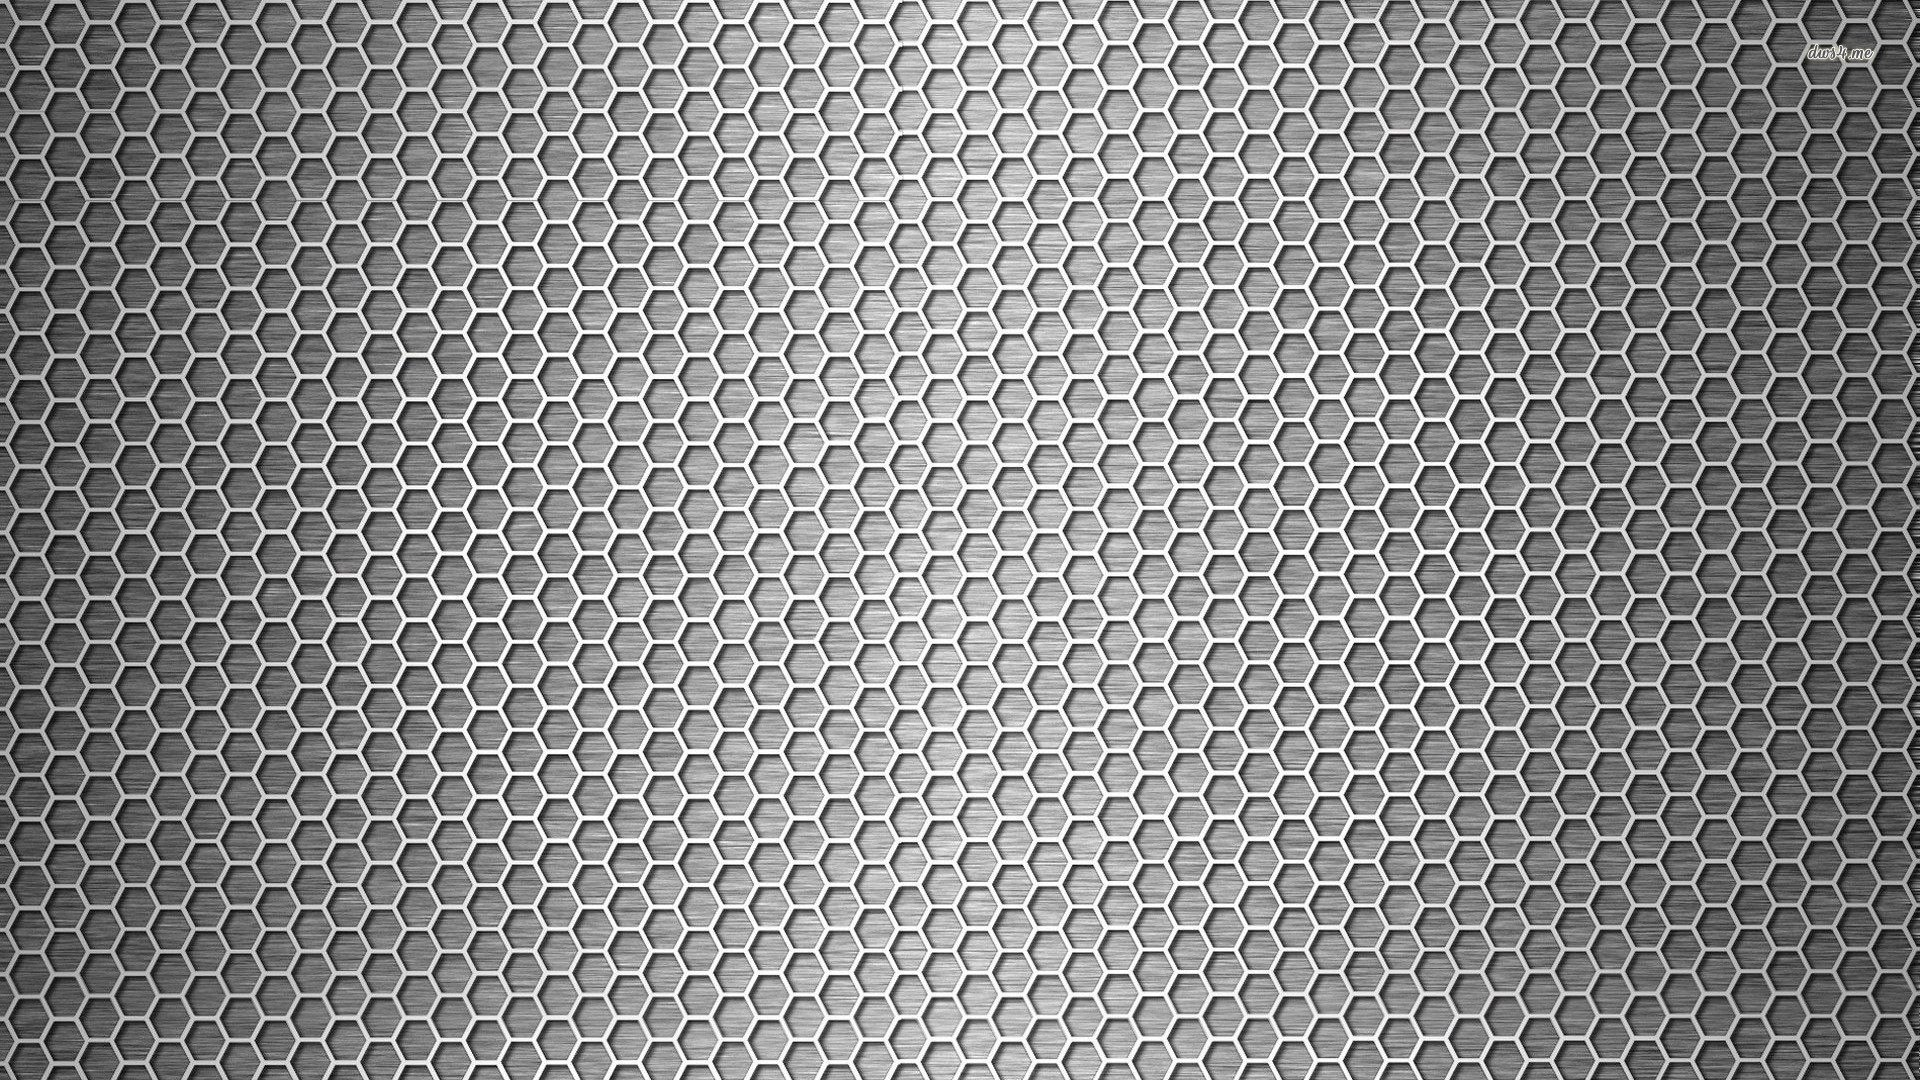 1366x768 grey honeycomb pattern - photo #5